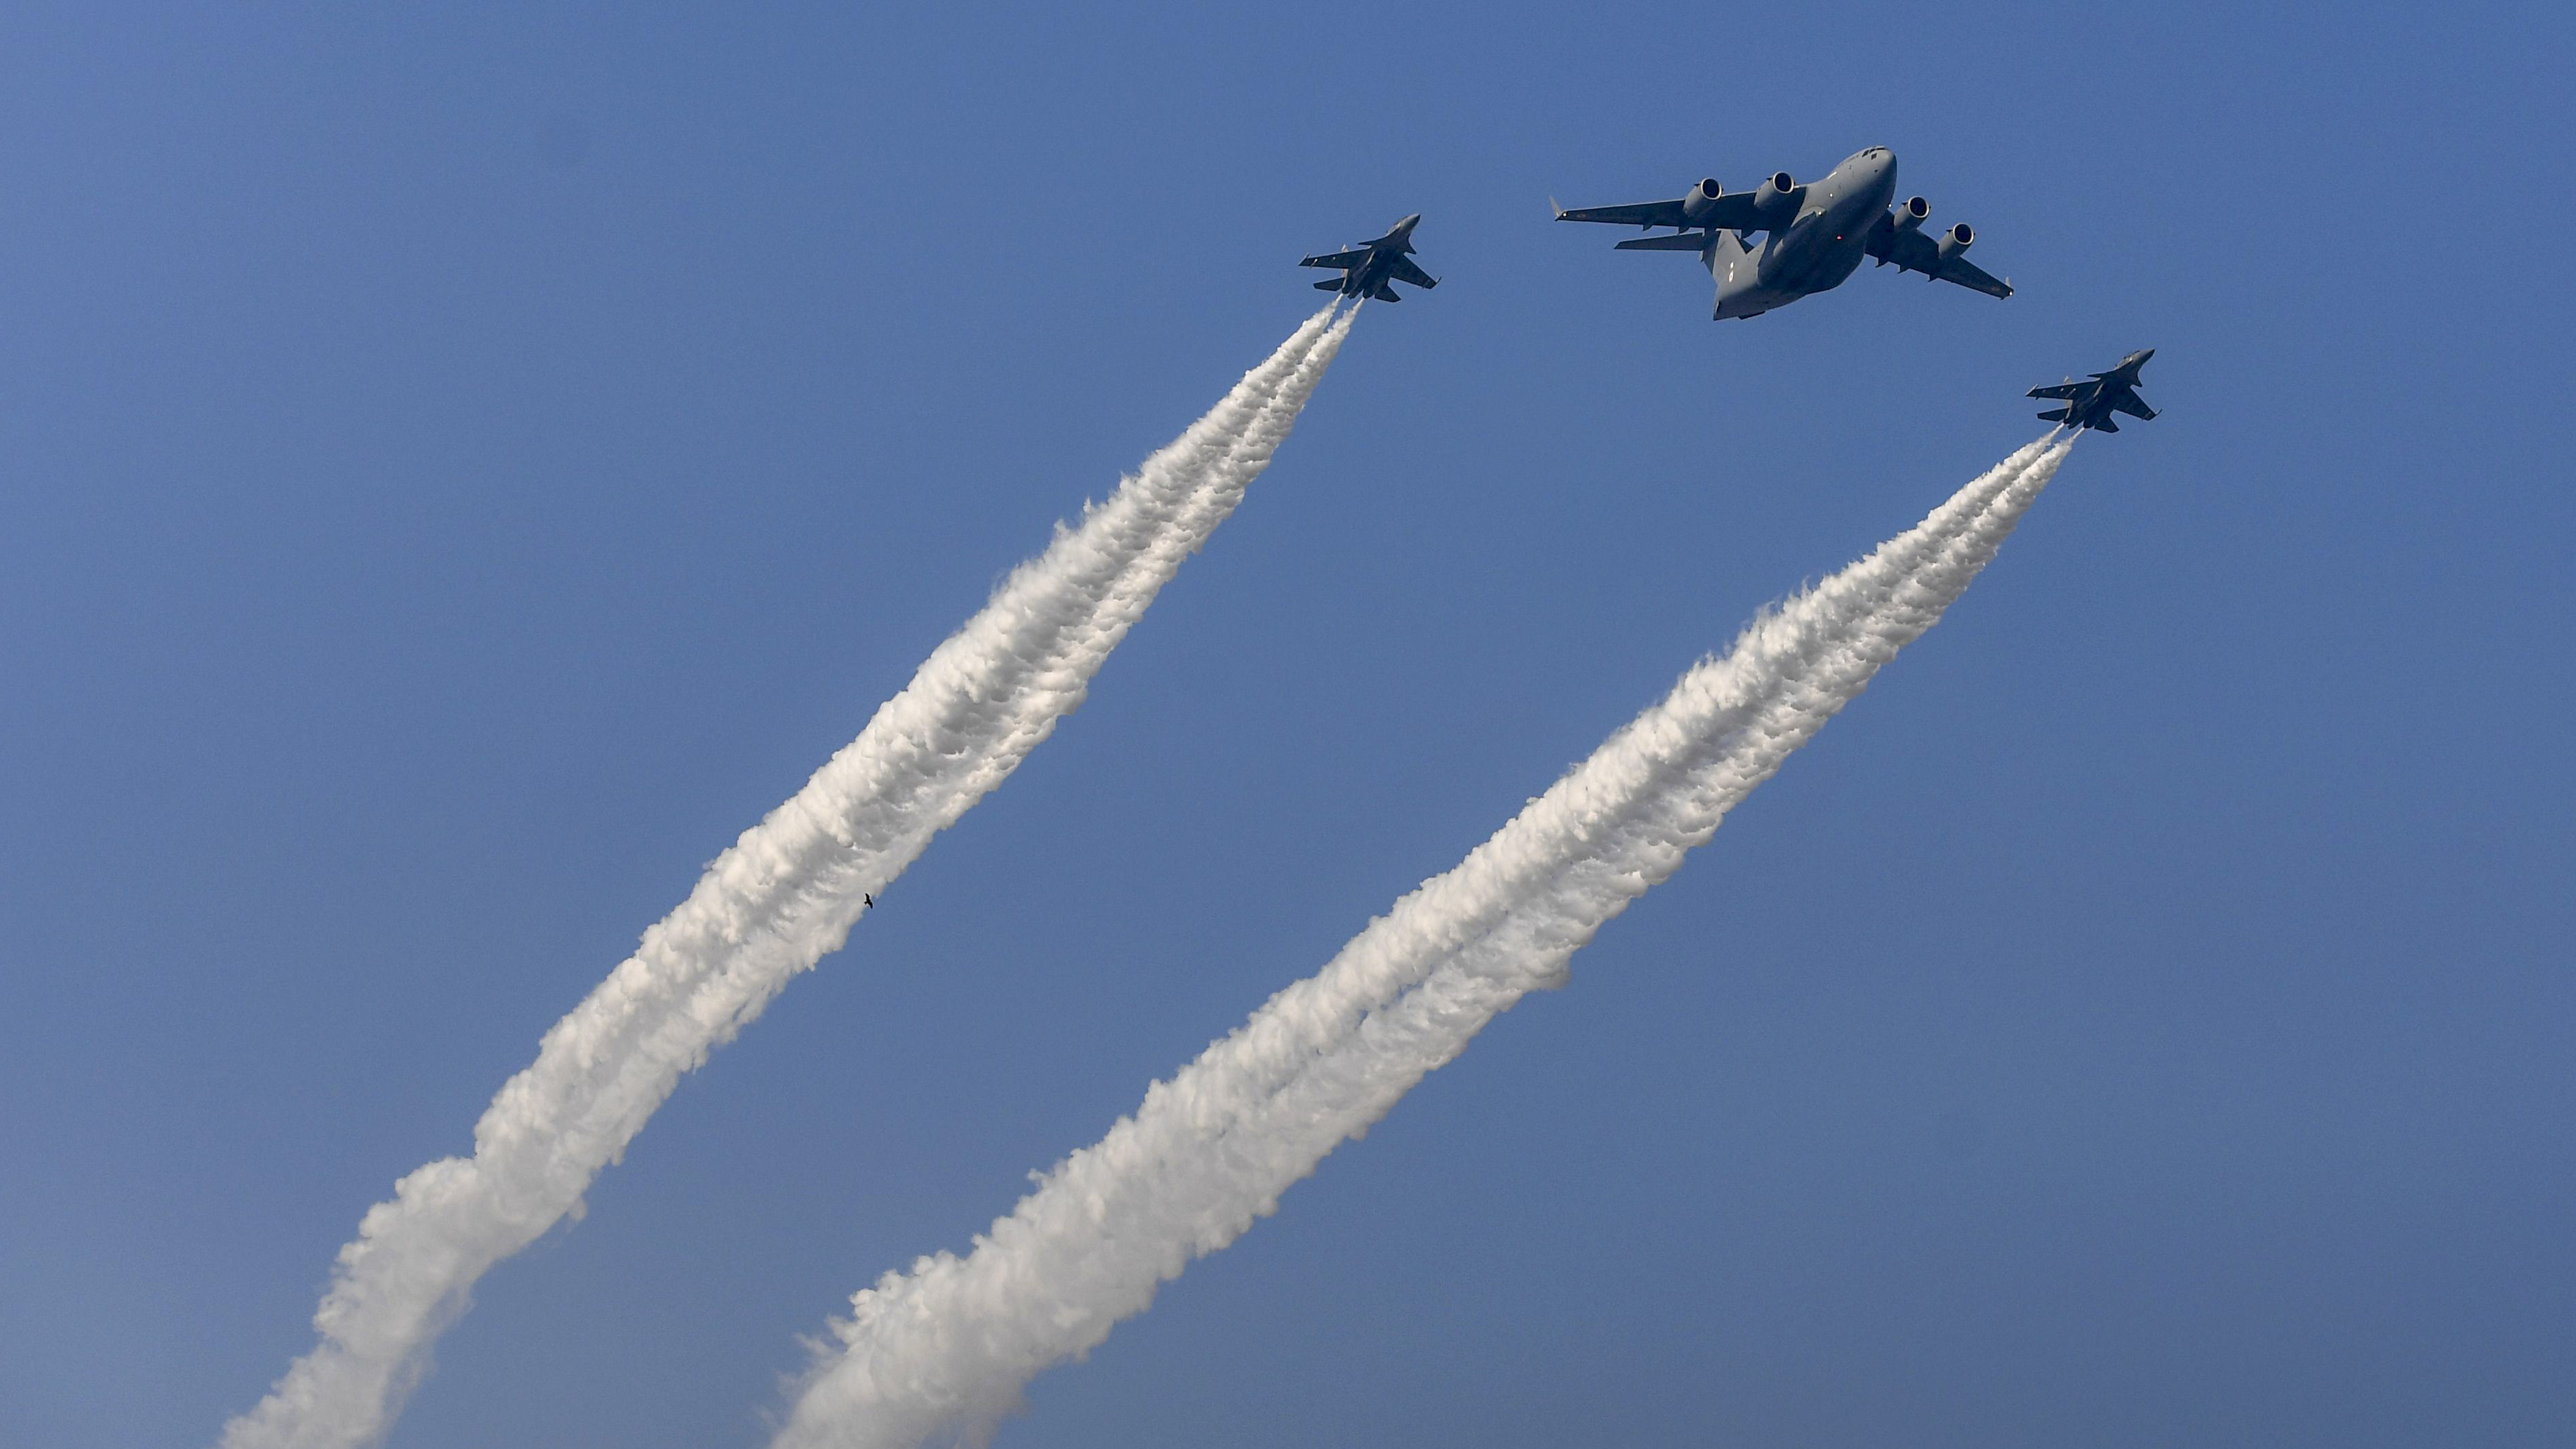 Indian fighter jets fly in formation with a C-17 Globemaster as they fly past during the Republic Day parade in New Delhi on January 26, 2019. - India celebrated its 70th Republic Day. (PMONEY SHARMA/AFP/Getty Images)